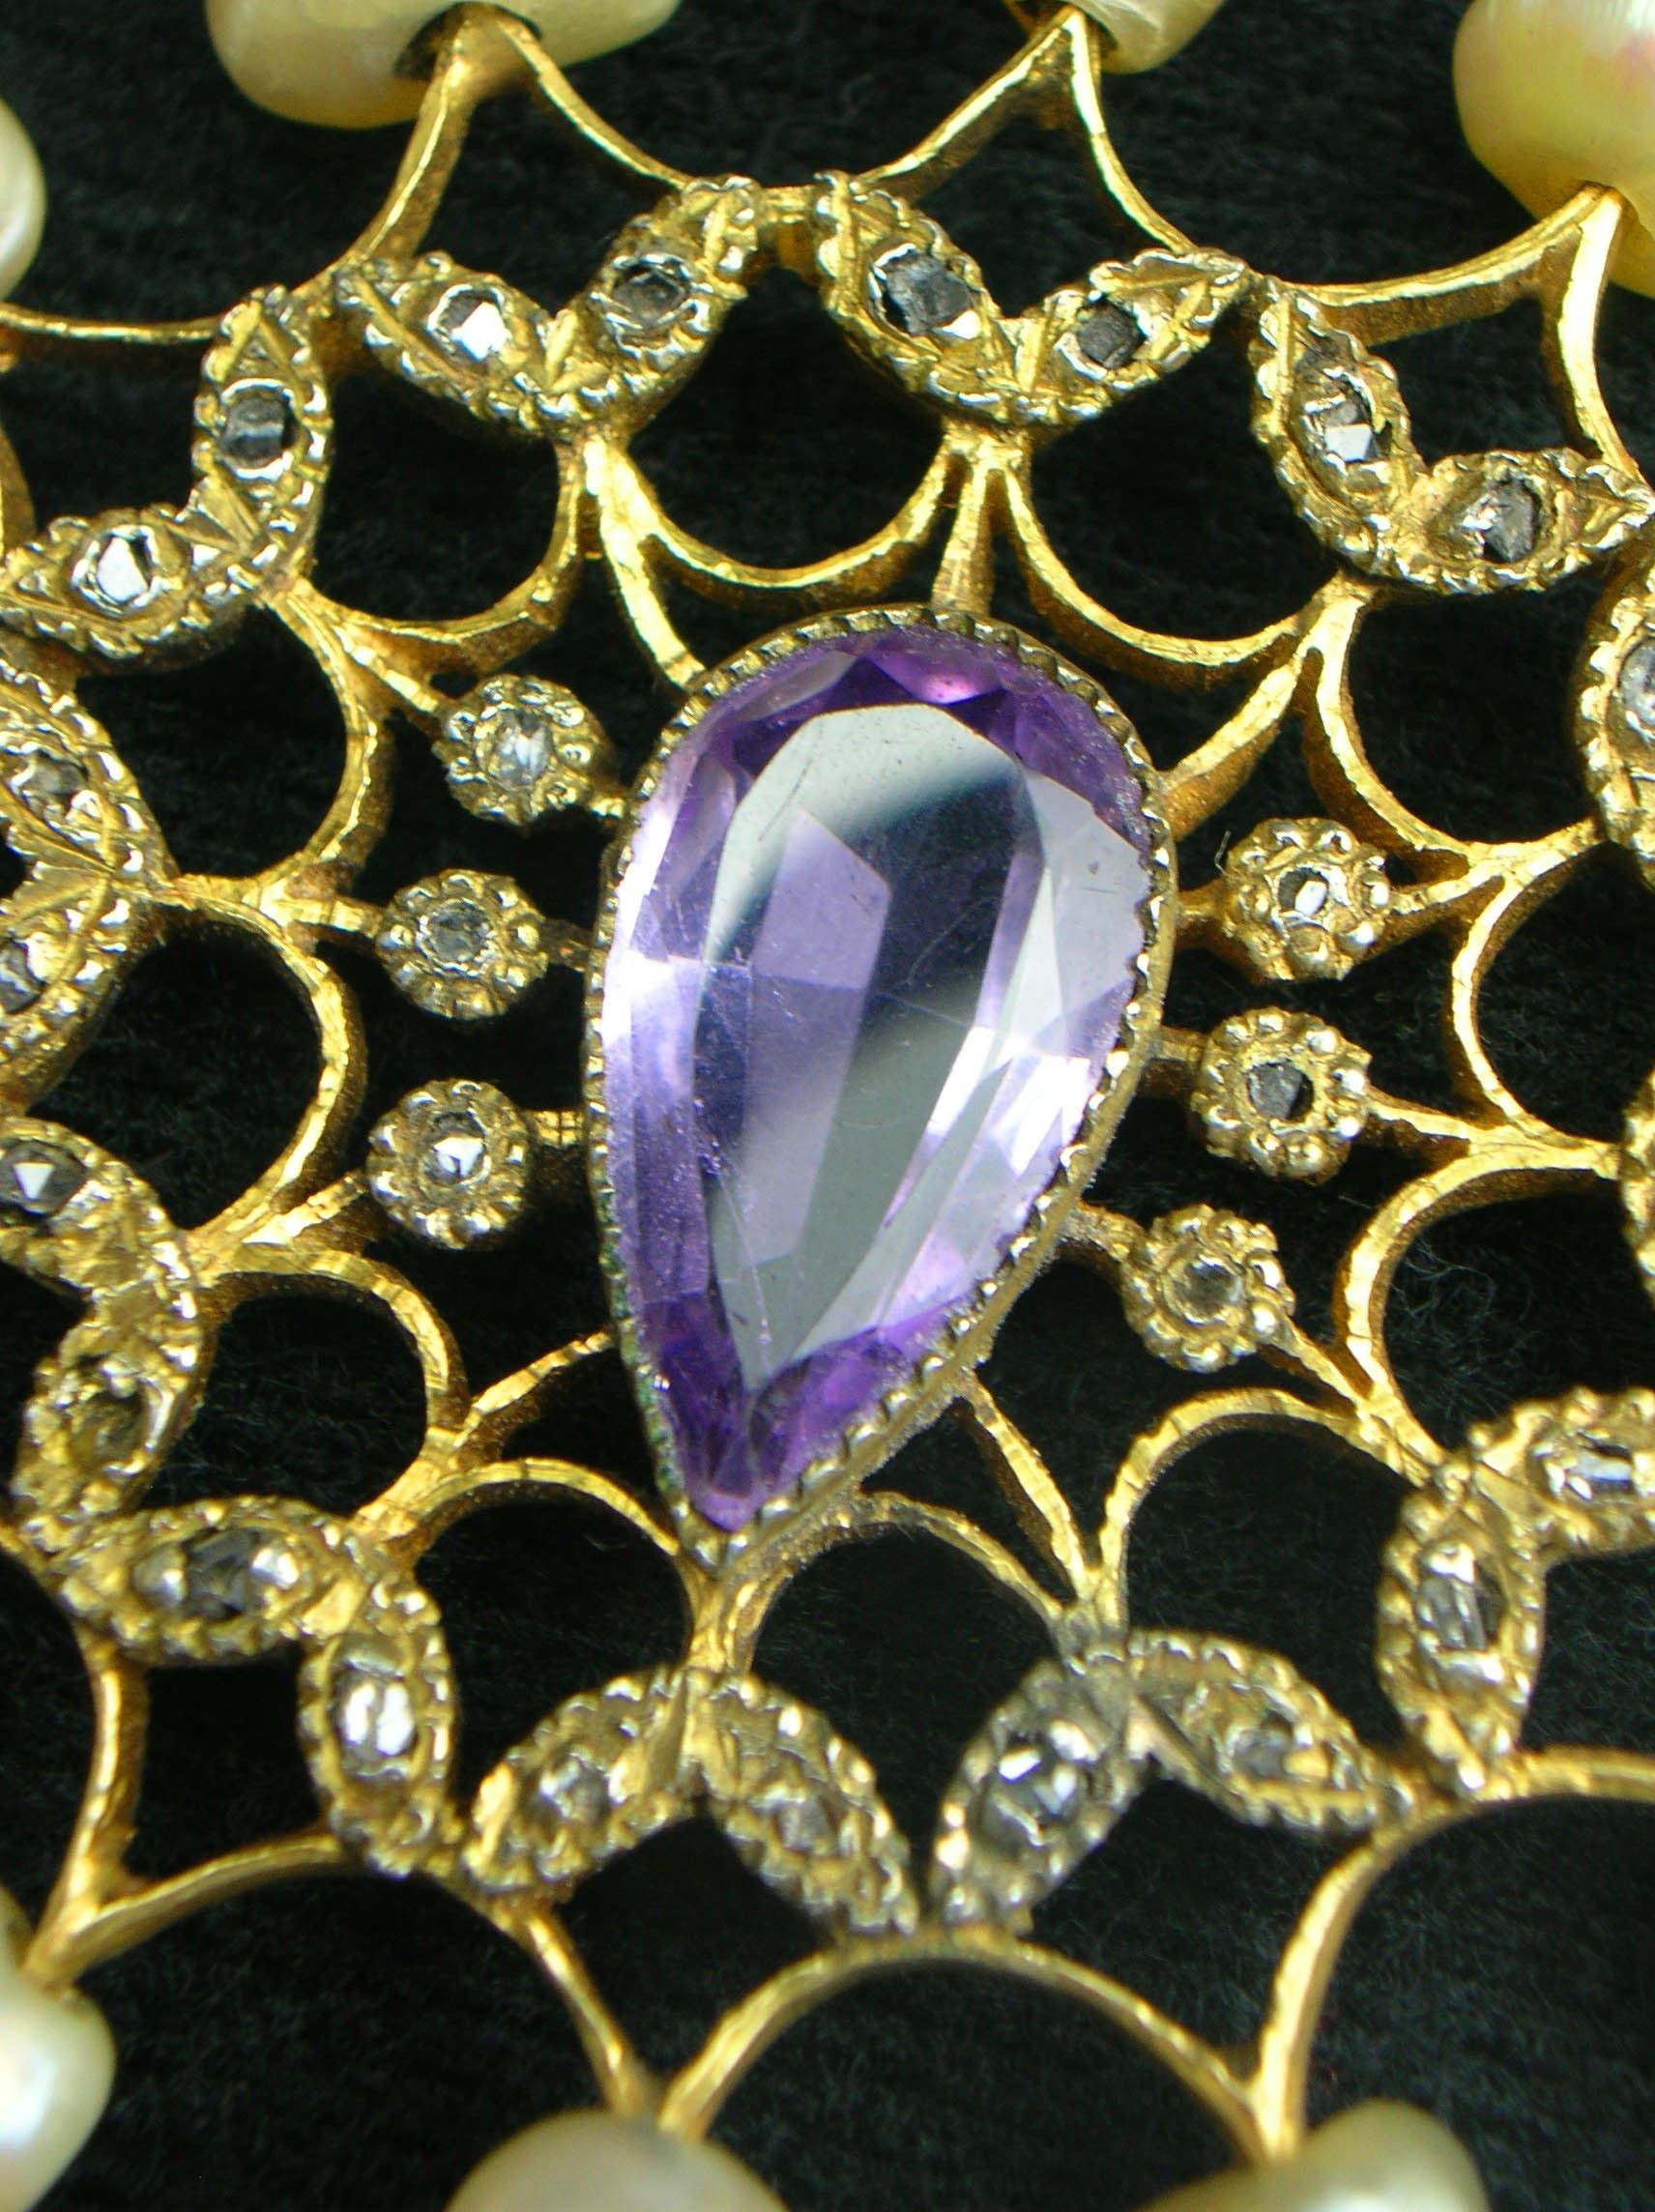 ROSARY: Showing hand faceted amethyst center / diamonds